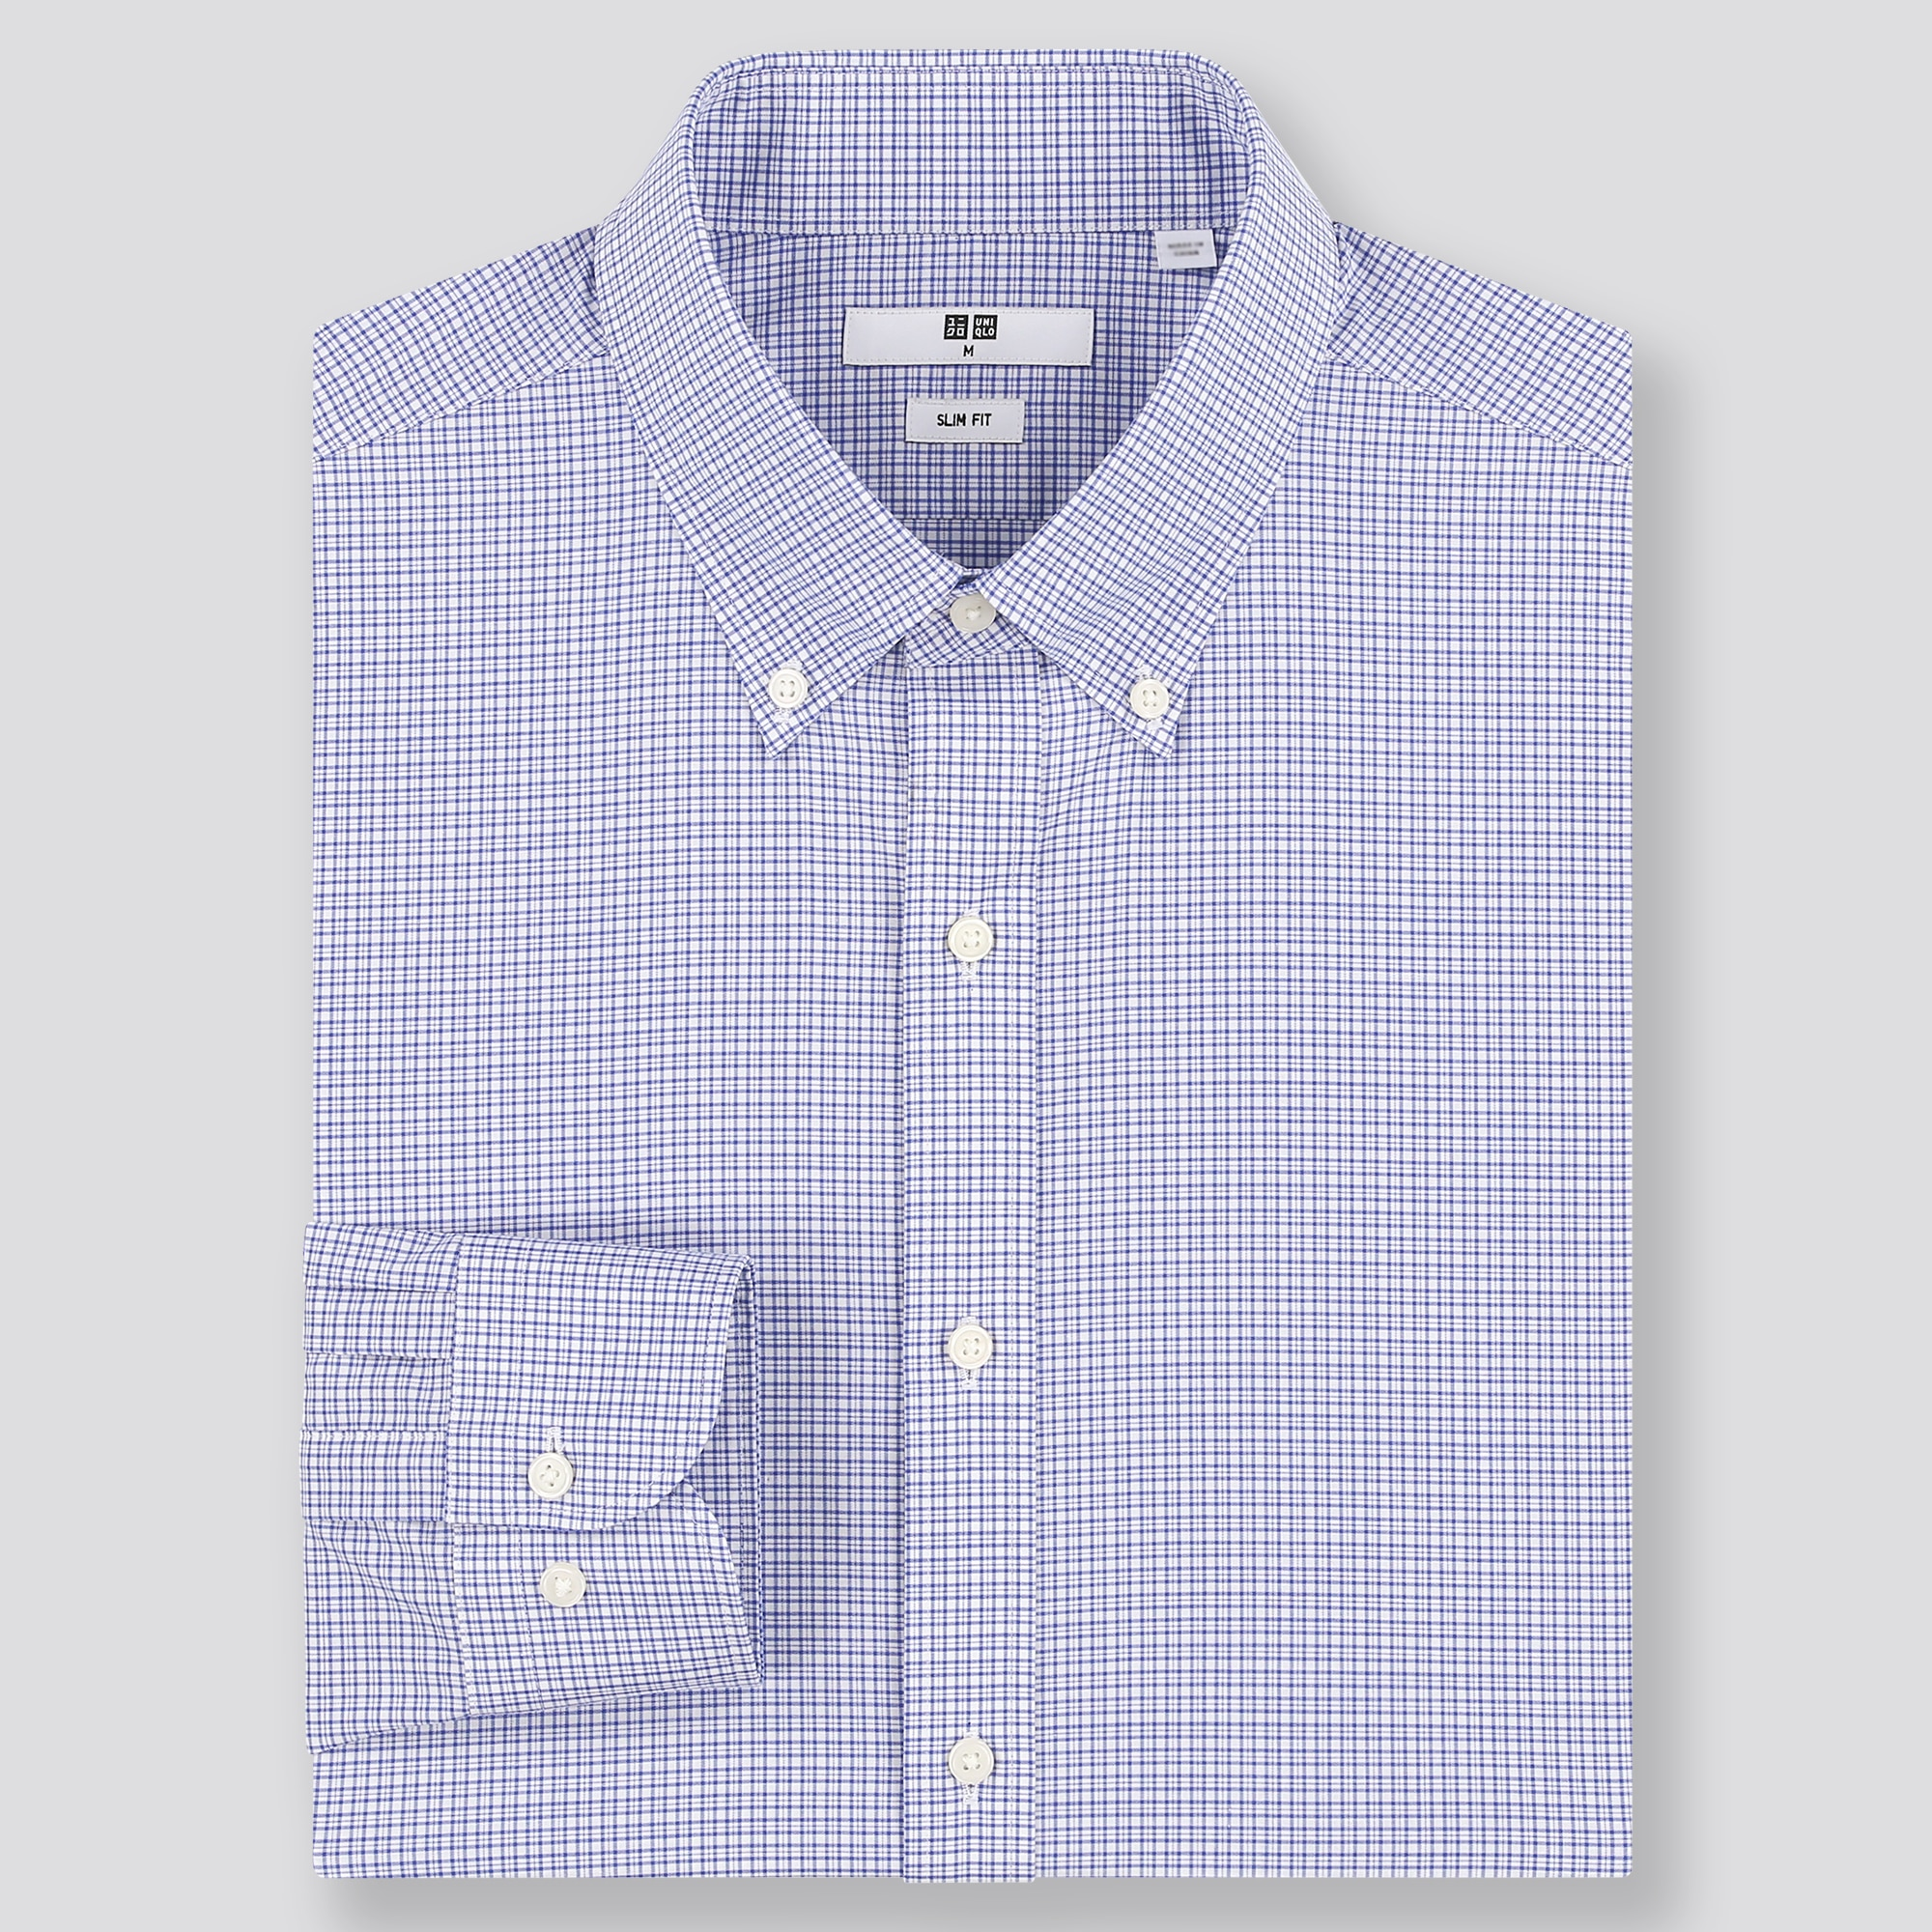 Clothe Co Mens Short Sleeve Wrinkle Resistant Easy Care Button Up Shirt